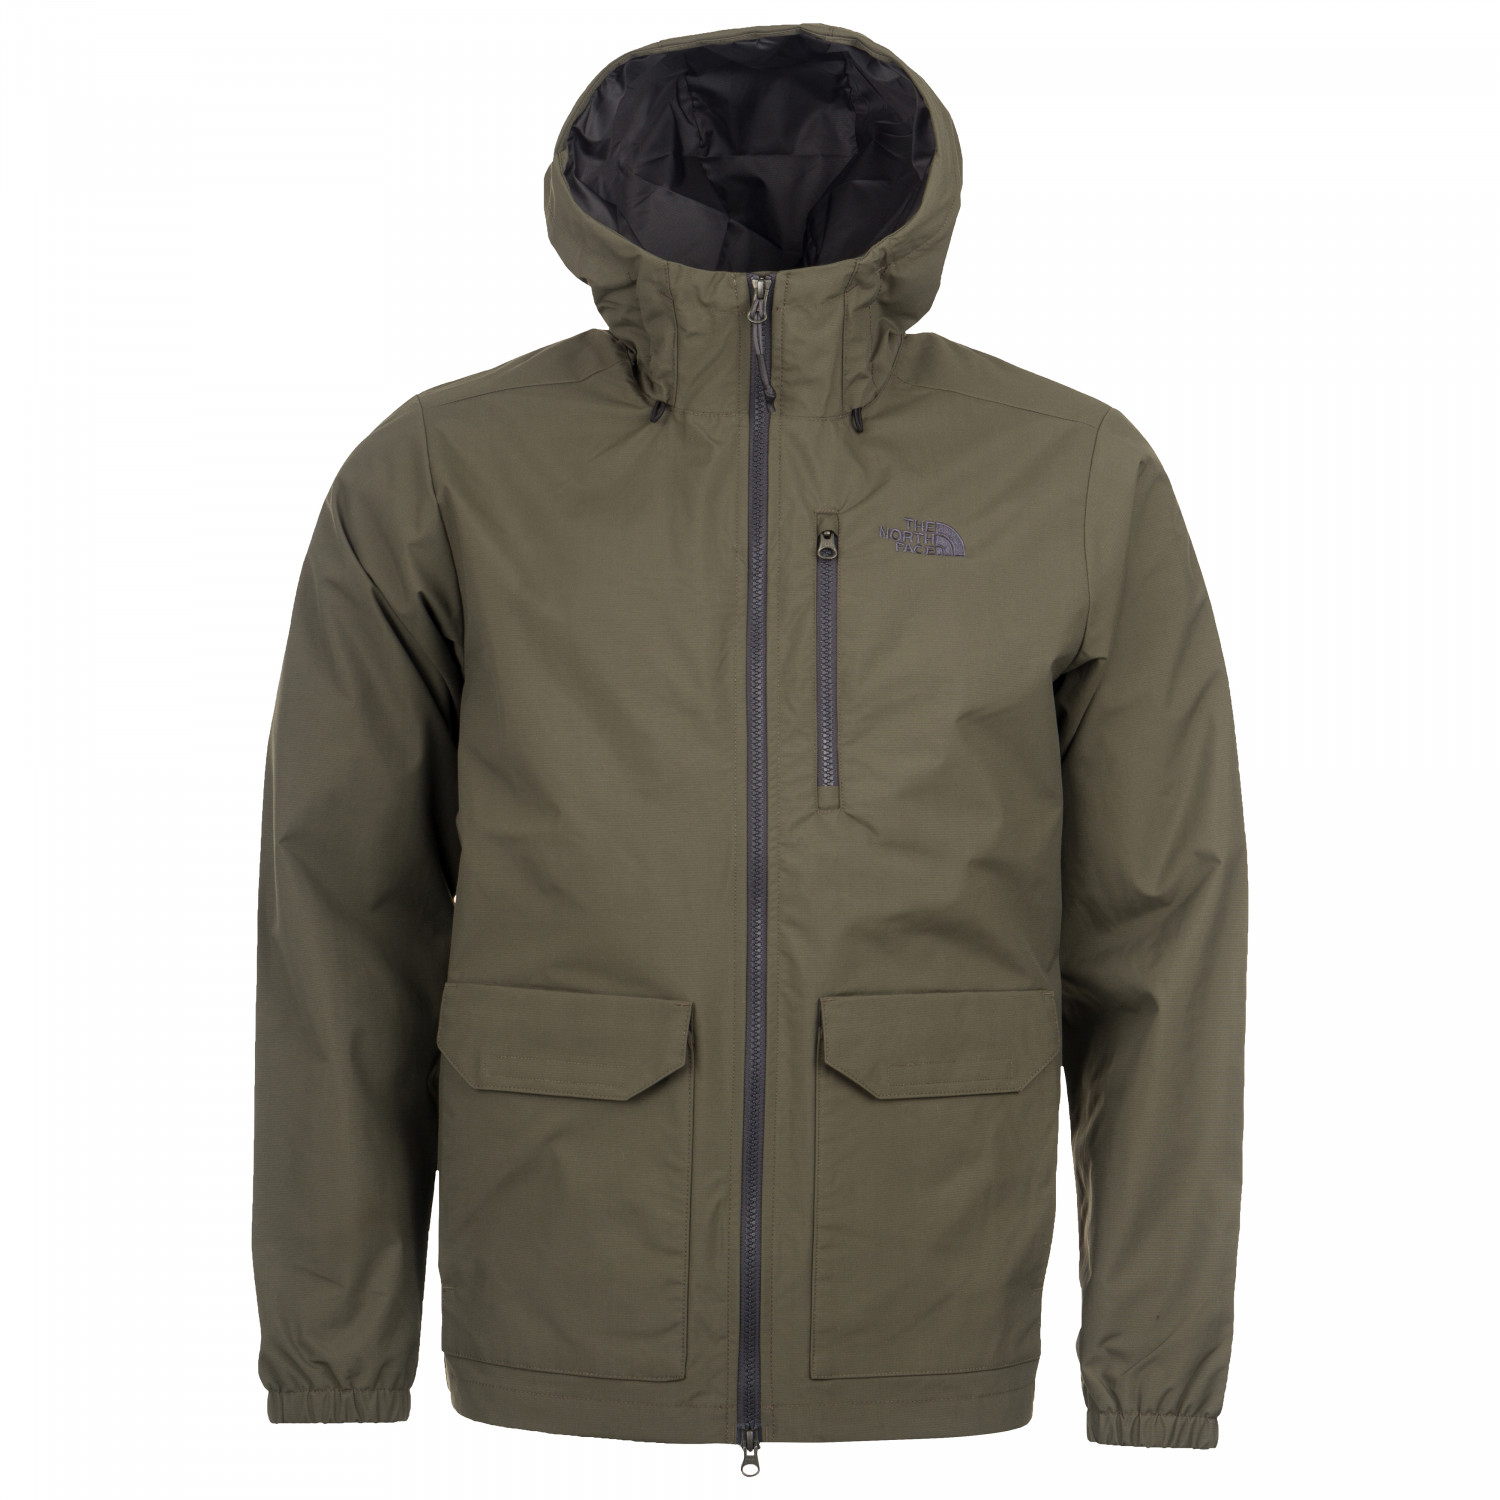 84a7e3512 The North Face - Wind Jacket 2 - Waterproof jacket - New Taupe Green | S